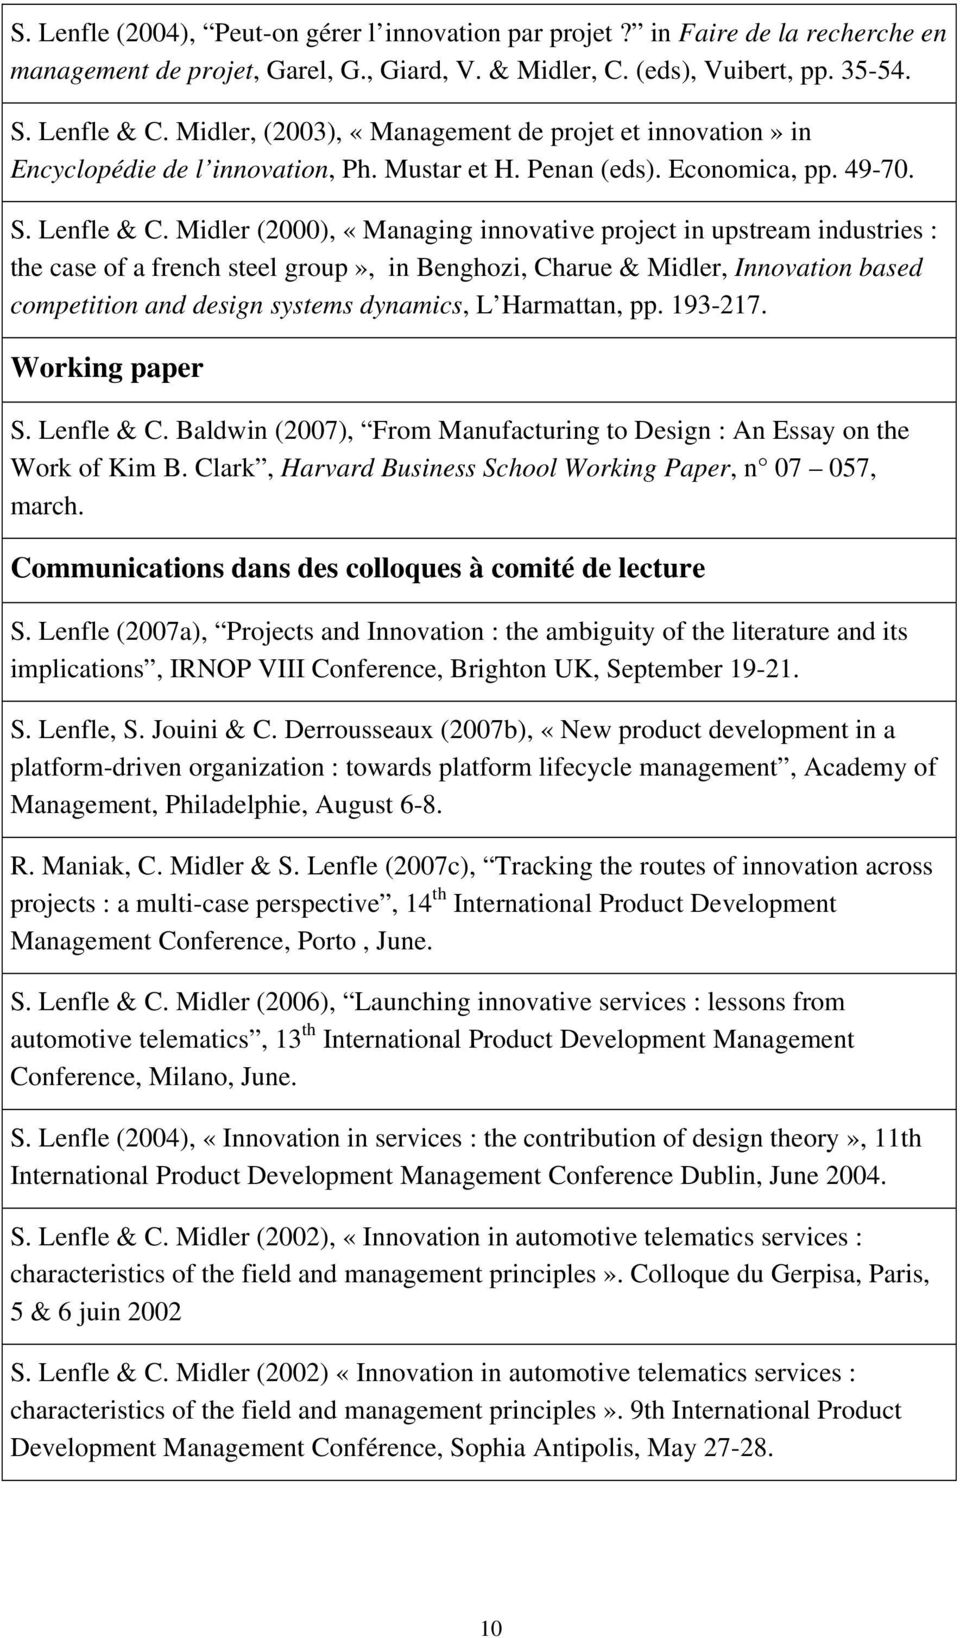 Midler (2000), «Managing innovative project in upstream industries : the case of a french steel group», in Benghozi, Charue & Midler, Innovation based competition and design systems dynamics, L